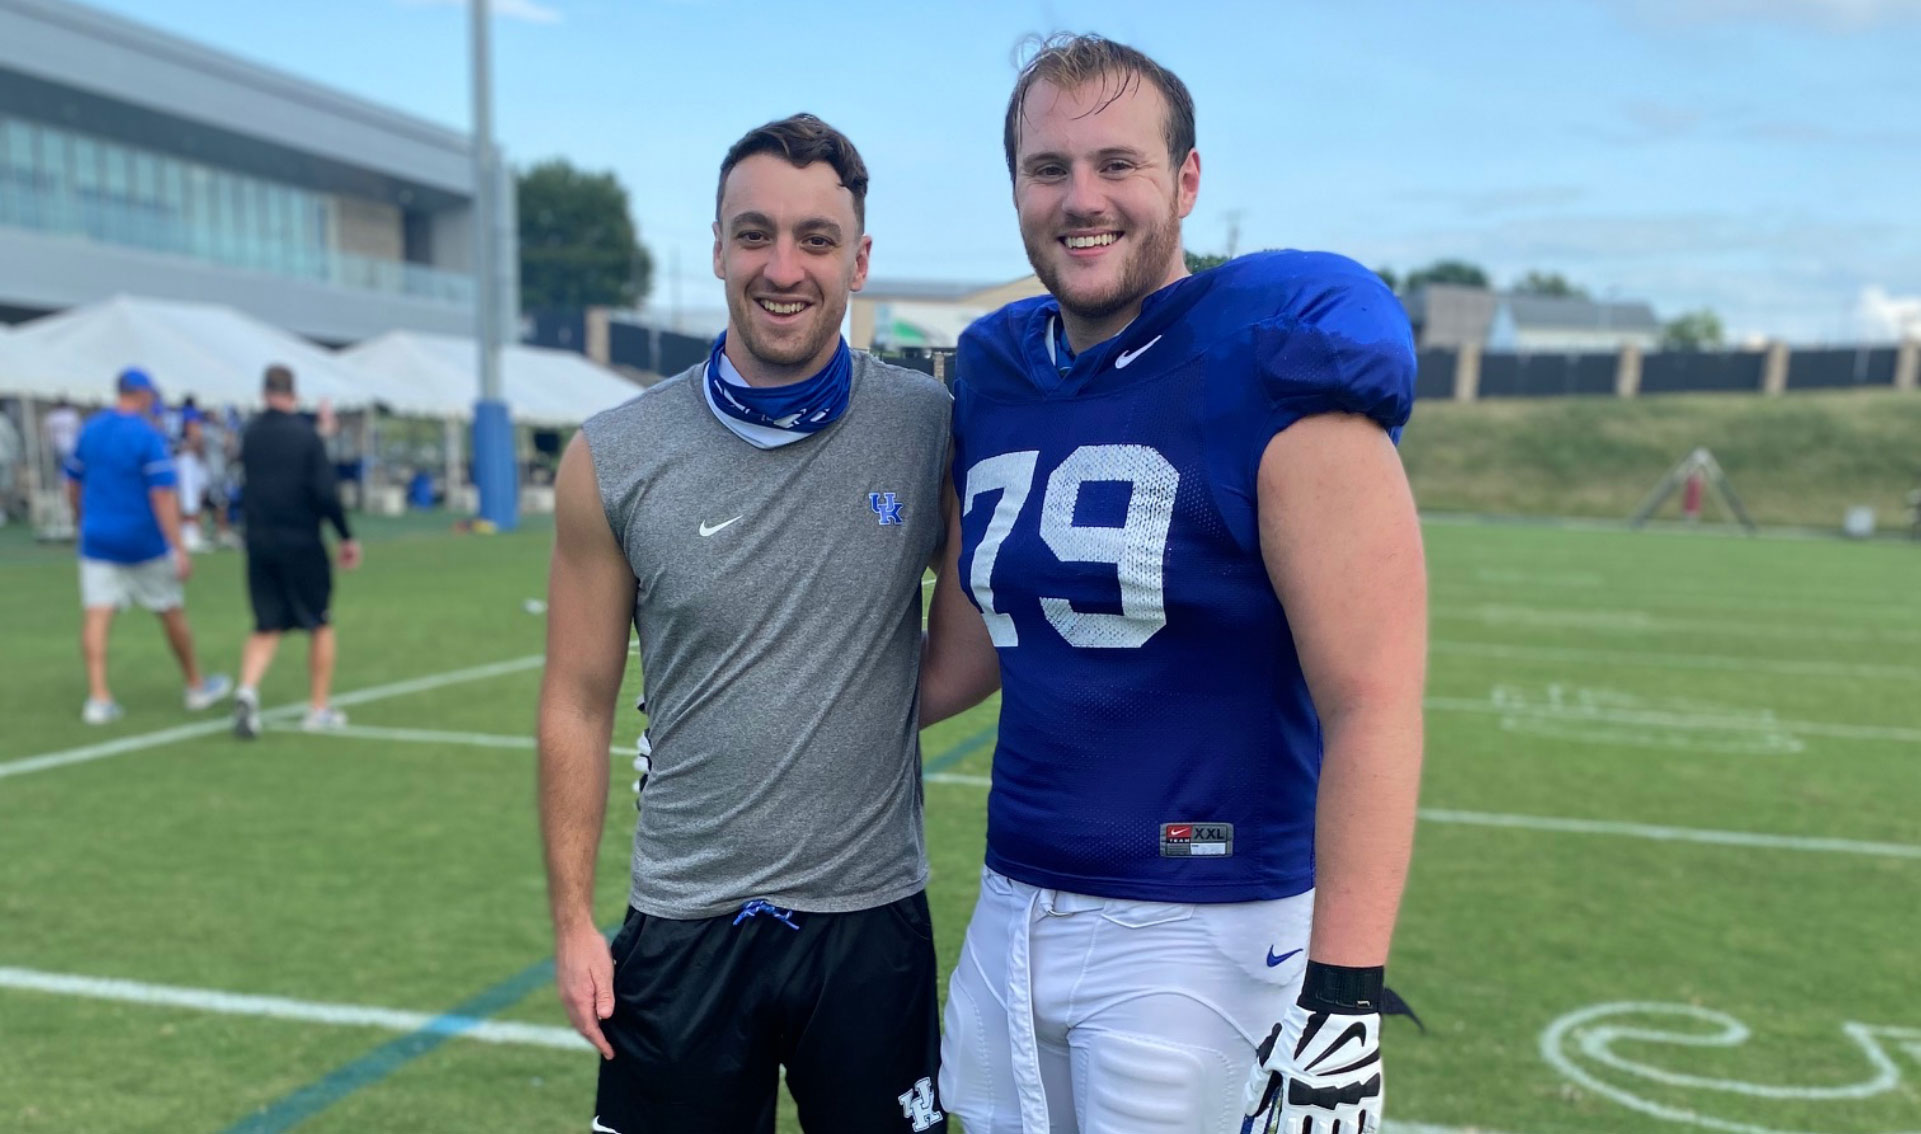 Luke and Max pose for a photo on the field. Both are wearing their practice gear and are smiling.